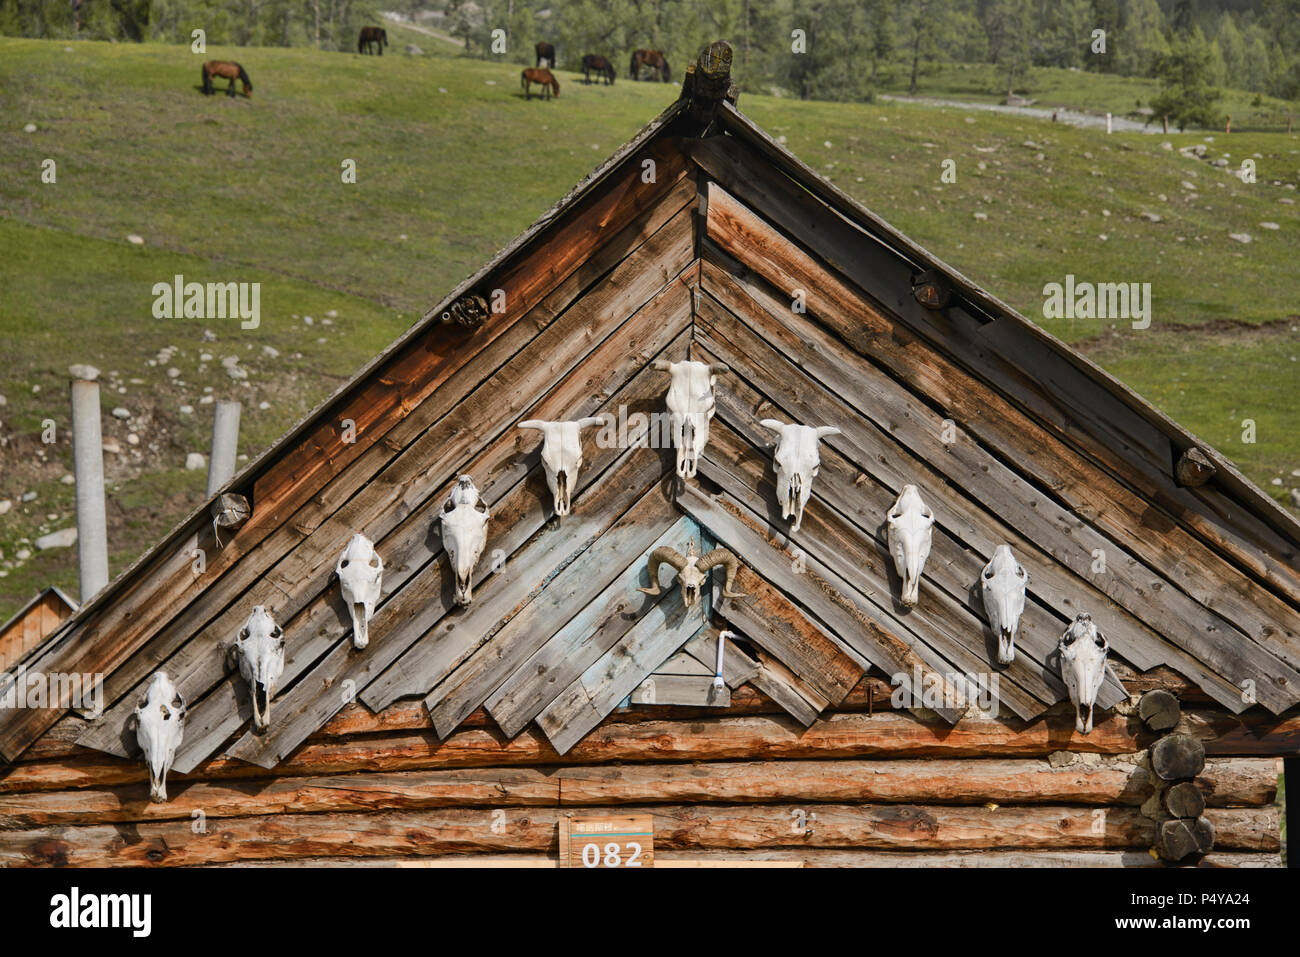 Wood home in ethnic Tuvan village, Kanas Lake National Park, Xinjiang, China - Stock Image